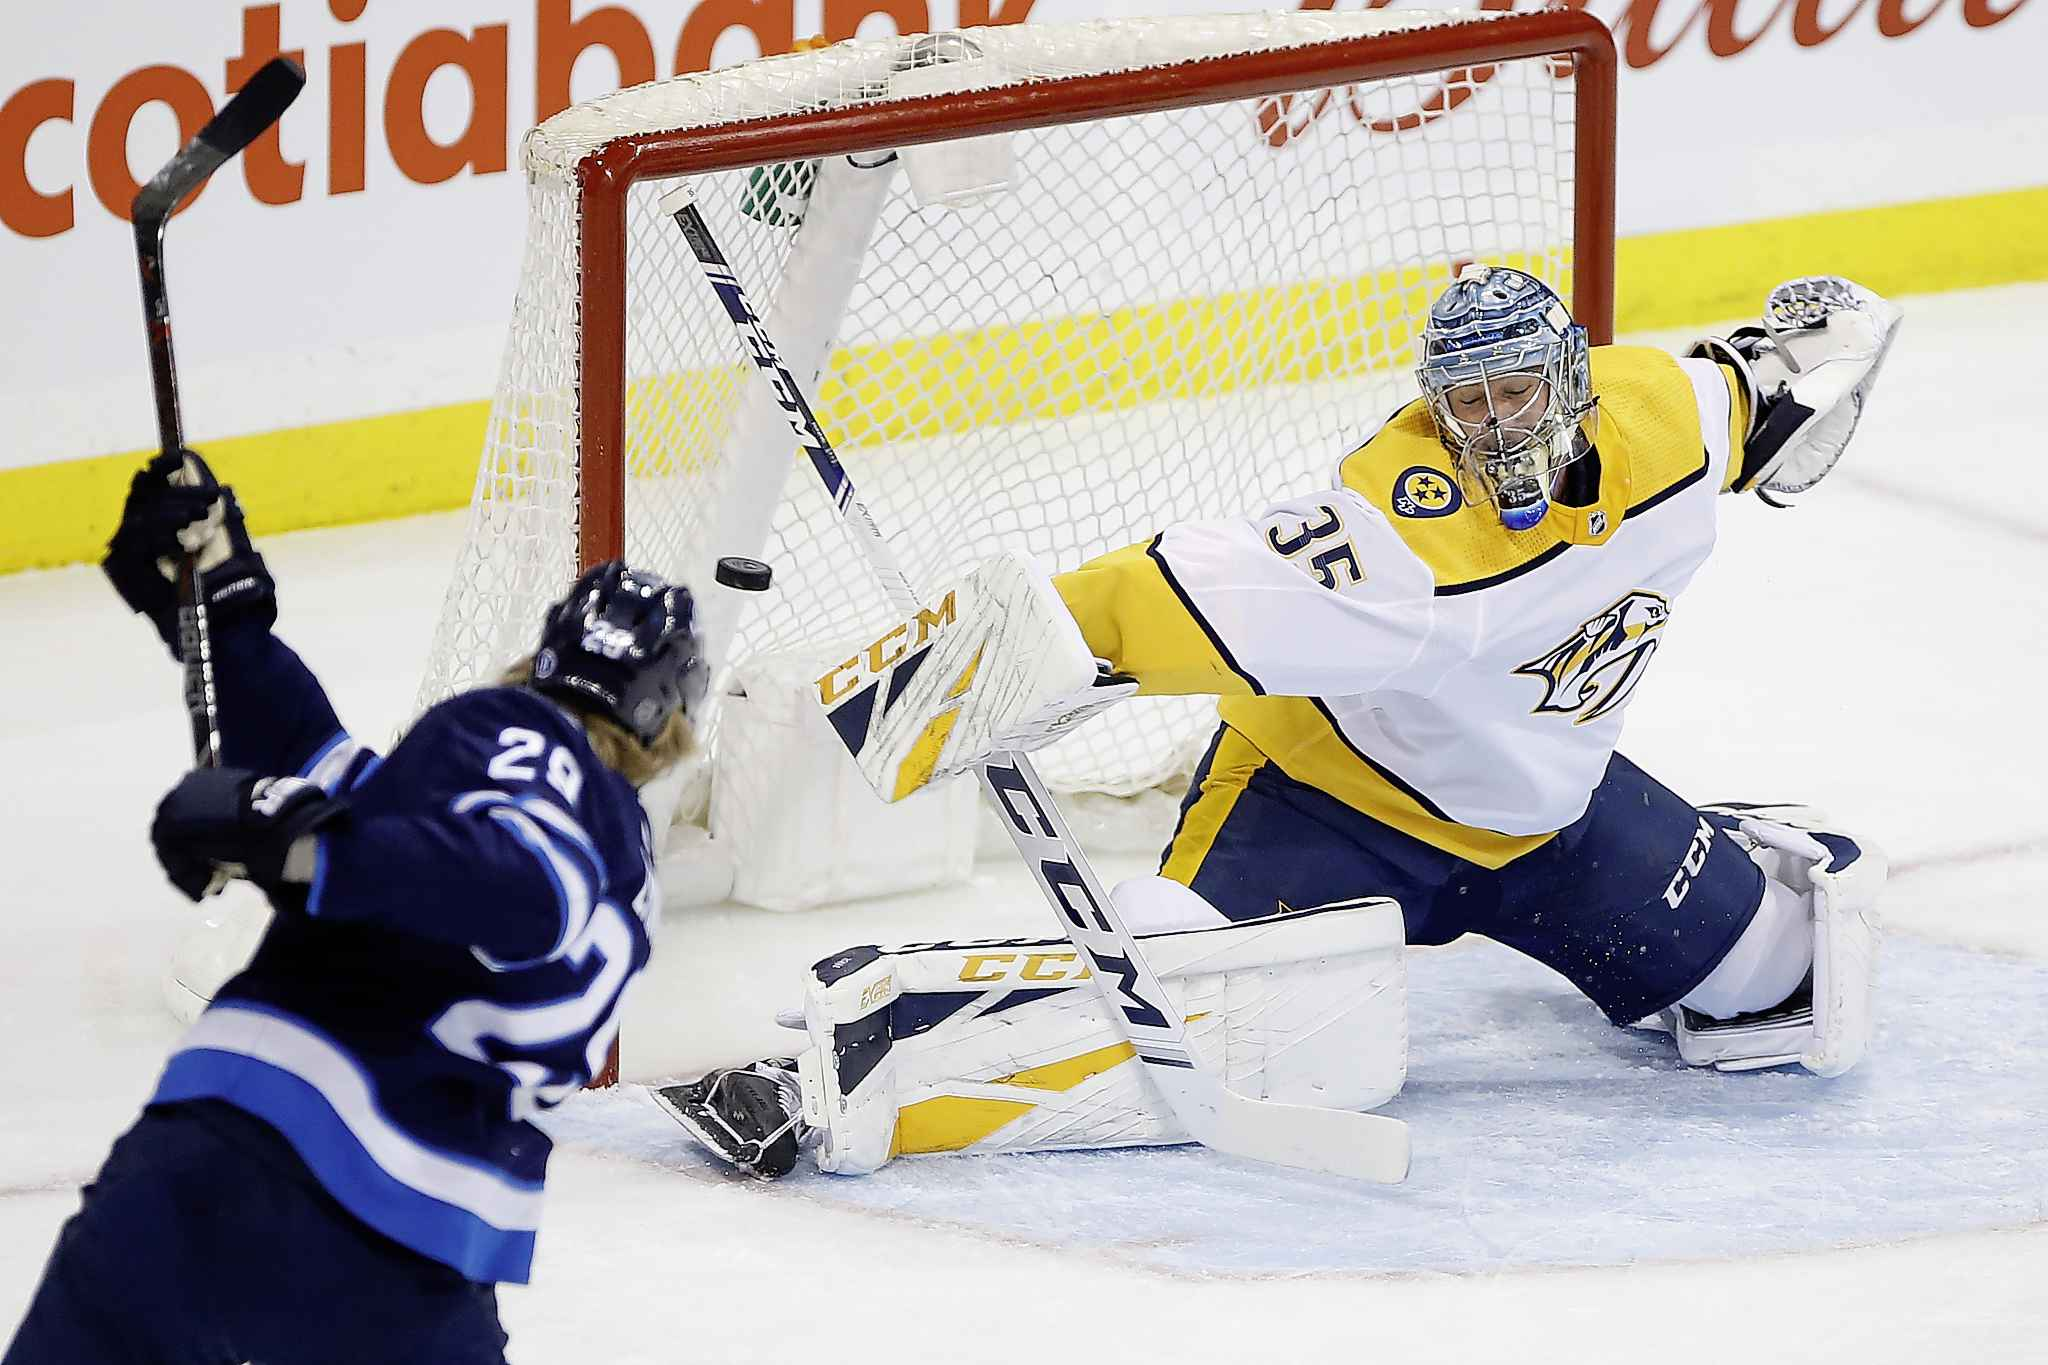 "JOHN WOODS / THE CANADIAN PRESS</p> <p>Winnipeg Jets' Patrik Laine (29) can't get the puck past Nashville Predators goaltender Pekka Rinne (35) as he makes the save during the first period.</p> <p>""></a><figcaption readability="